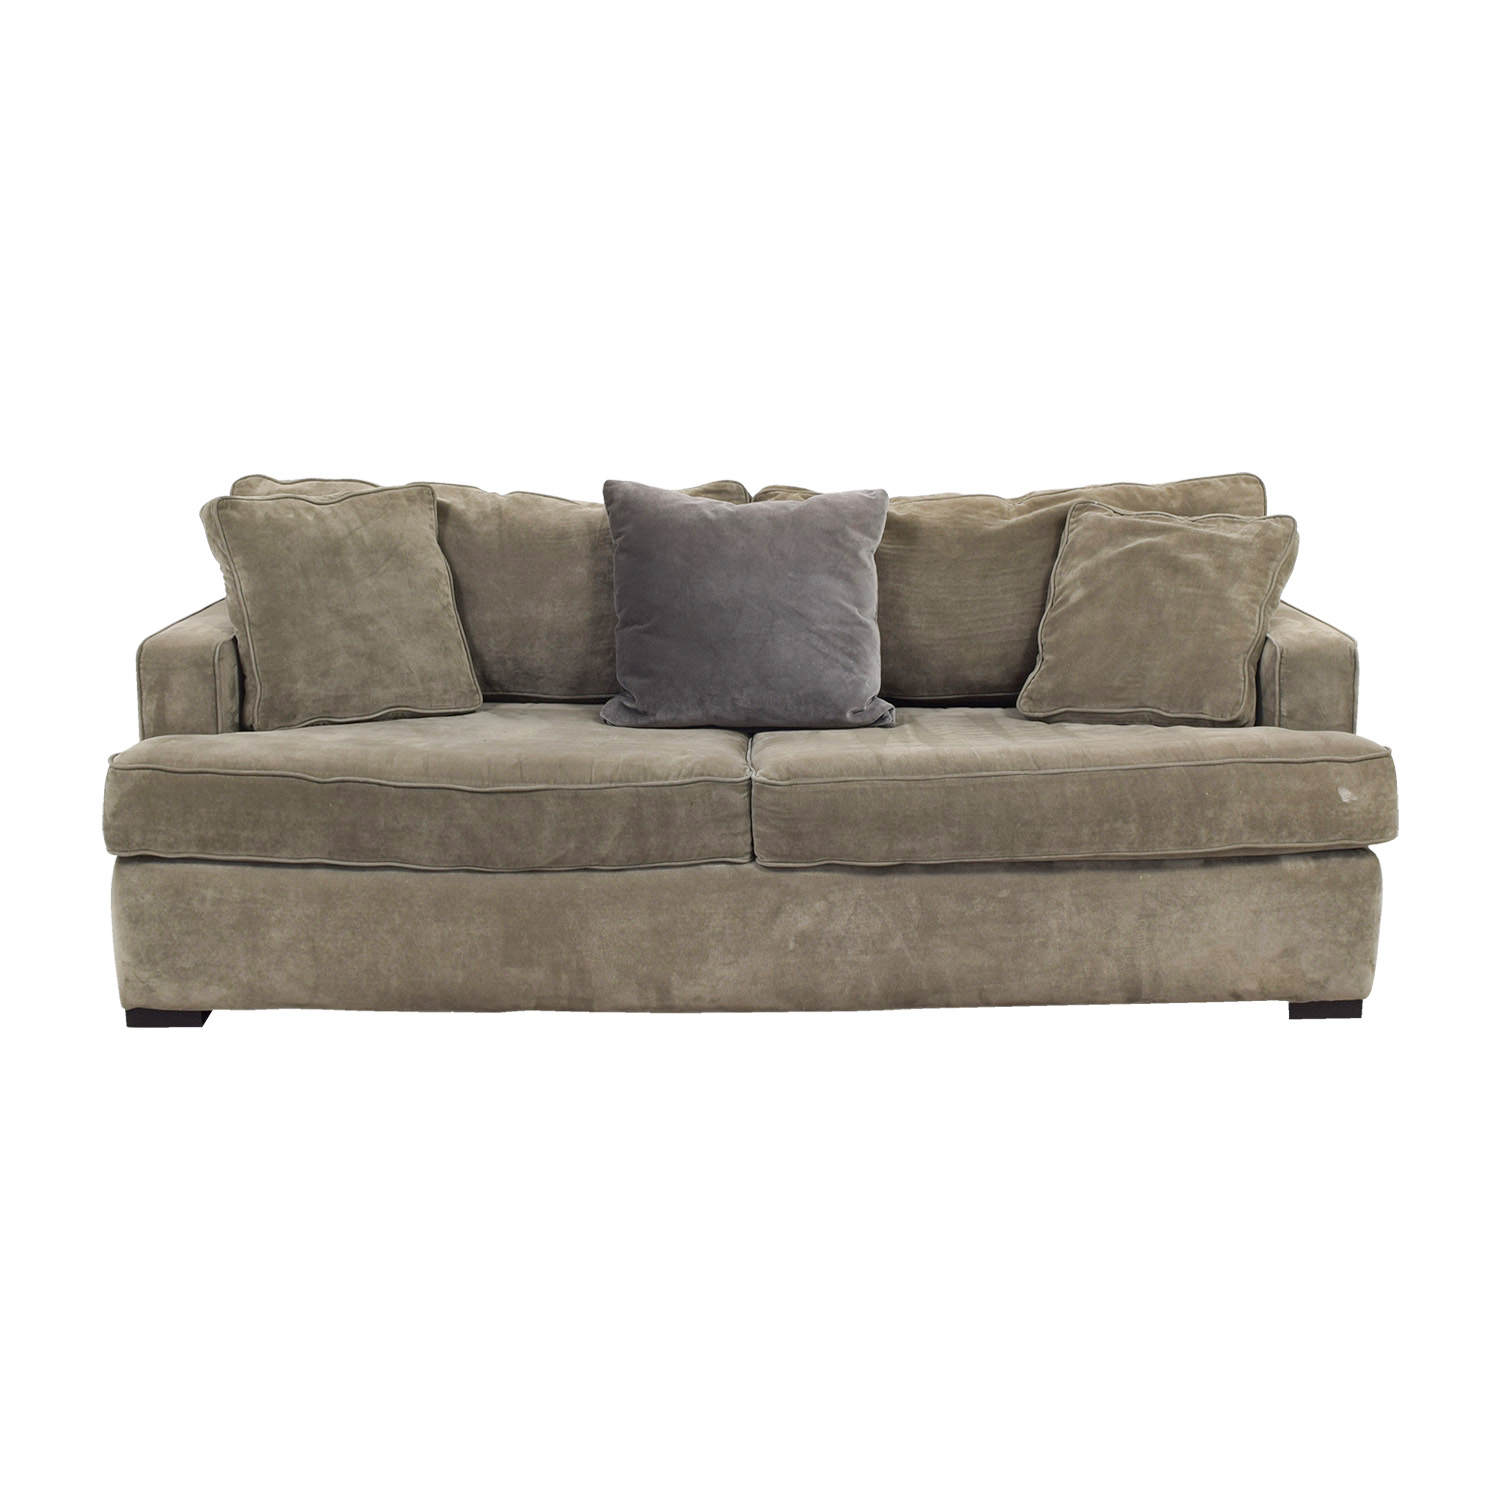 buy ABC Carpet & Home ABC Carpet & Home Velvet Grey Sofa online